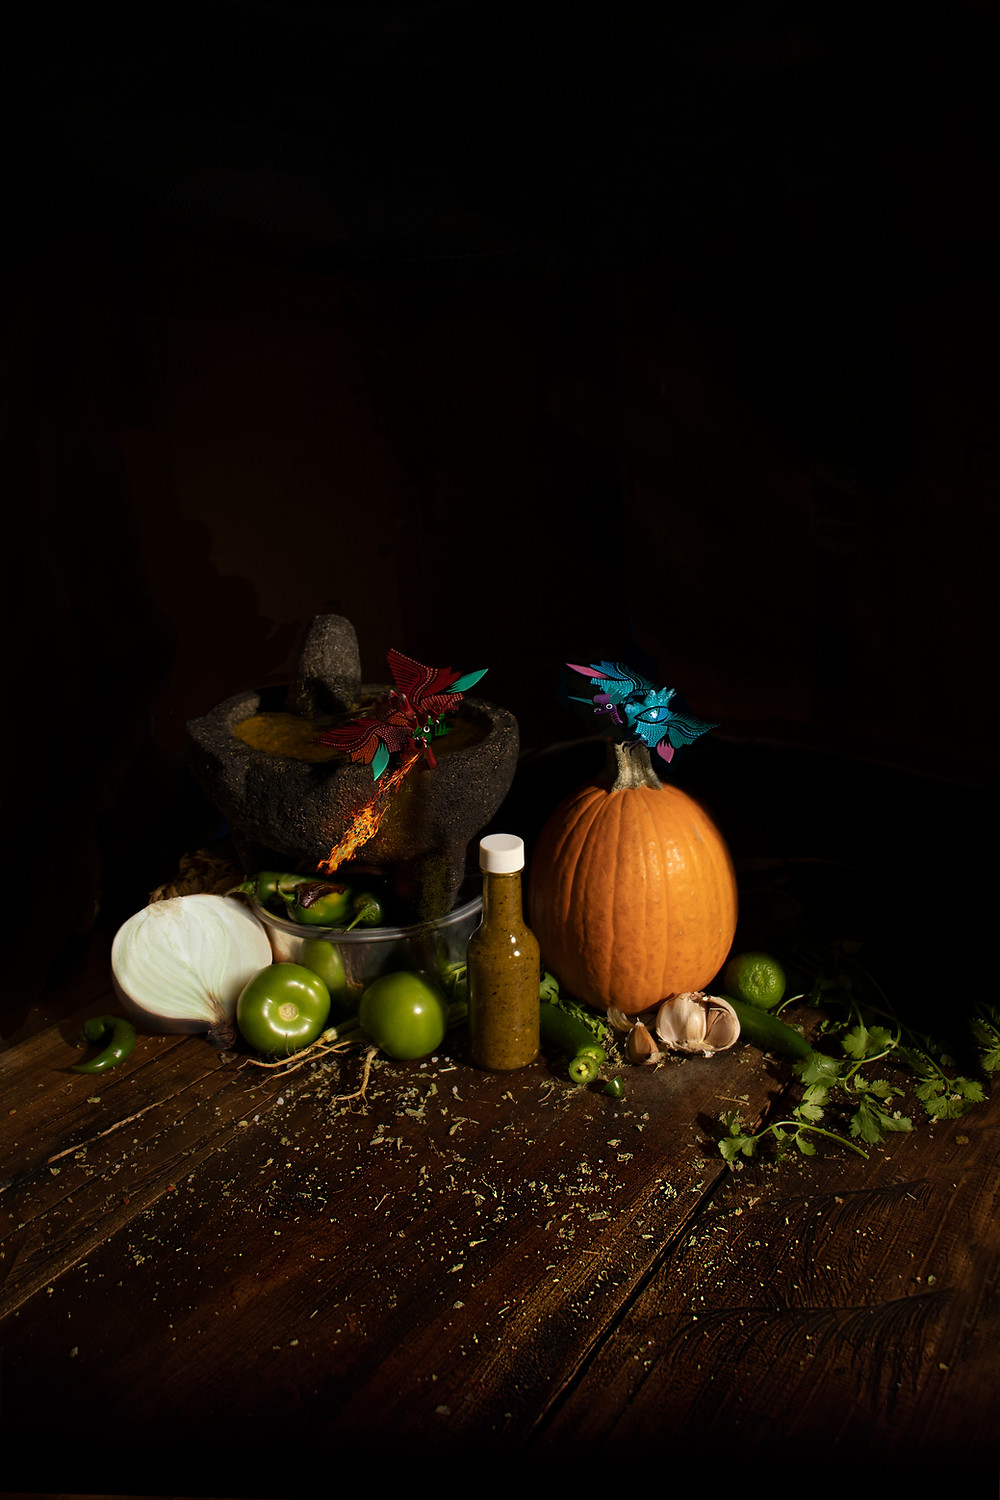 Tiny mythical Mexican creatures perched atop a pumpkin and molcajete, roasting the peppers for the salsa with their fire breath.